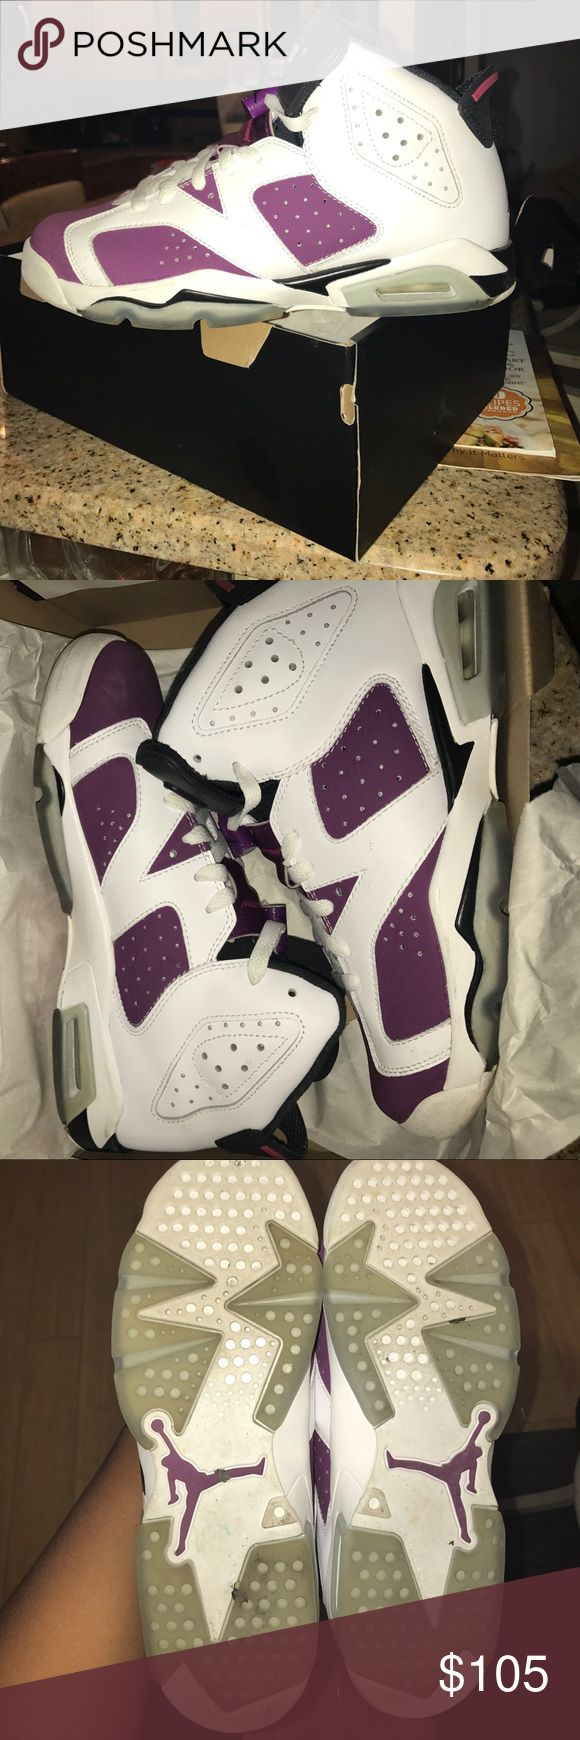 Air 6 jordans Limited edition female 6s retro Jordan's (only worn once). Brand new condition Air Jordan Shoes Sneakers